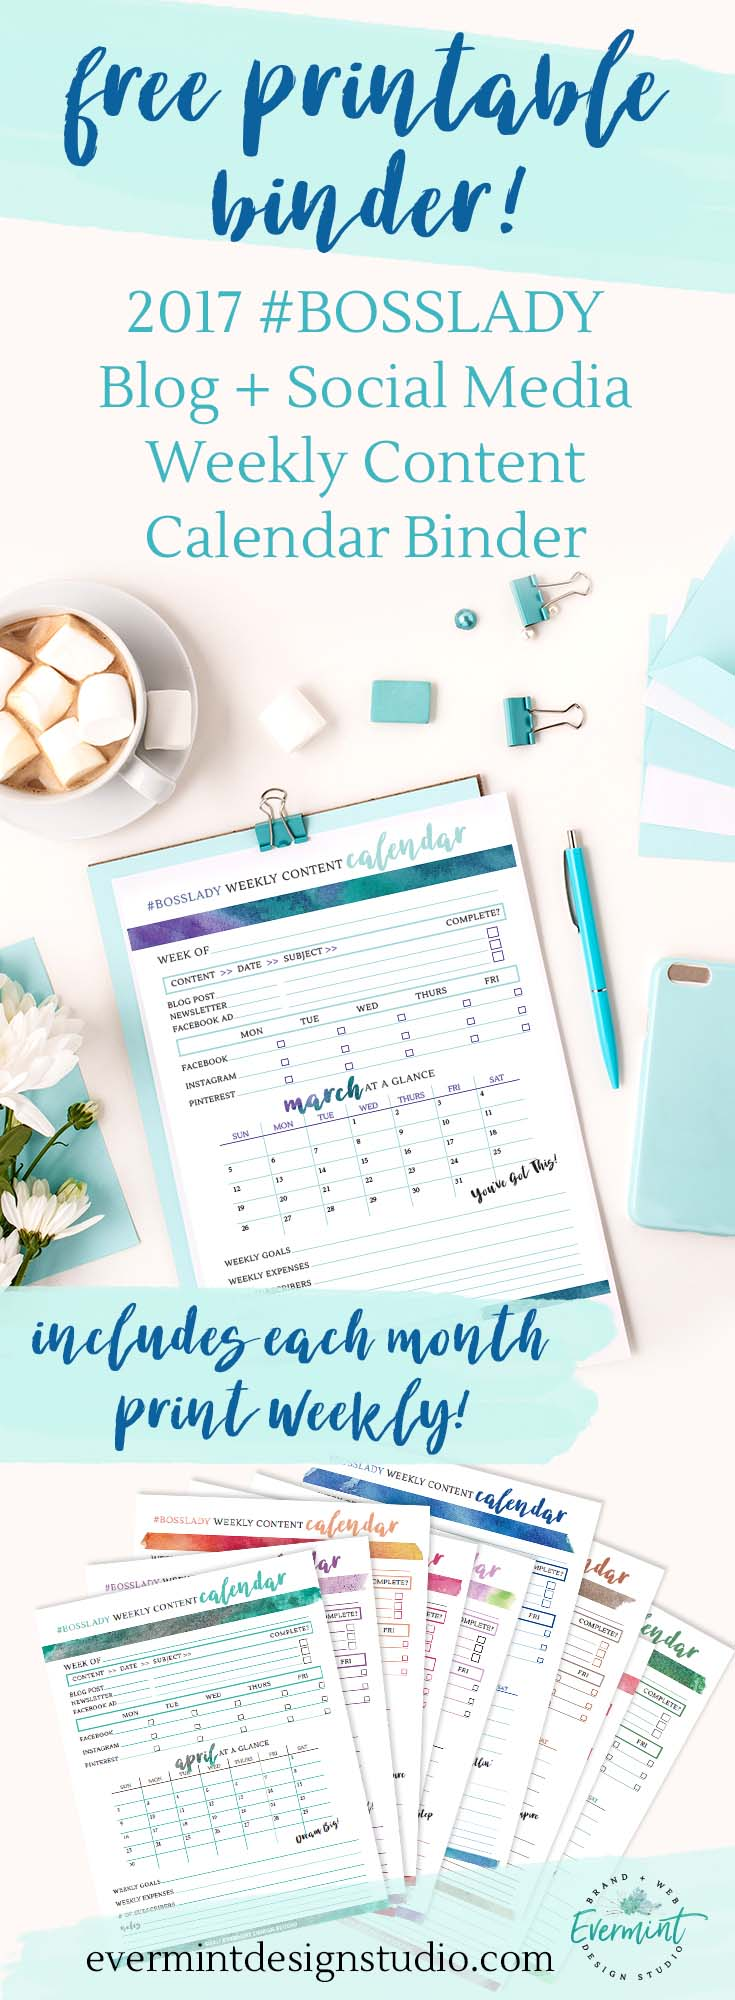 Blog + Social Media weekly content calendar binder